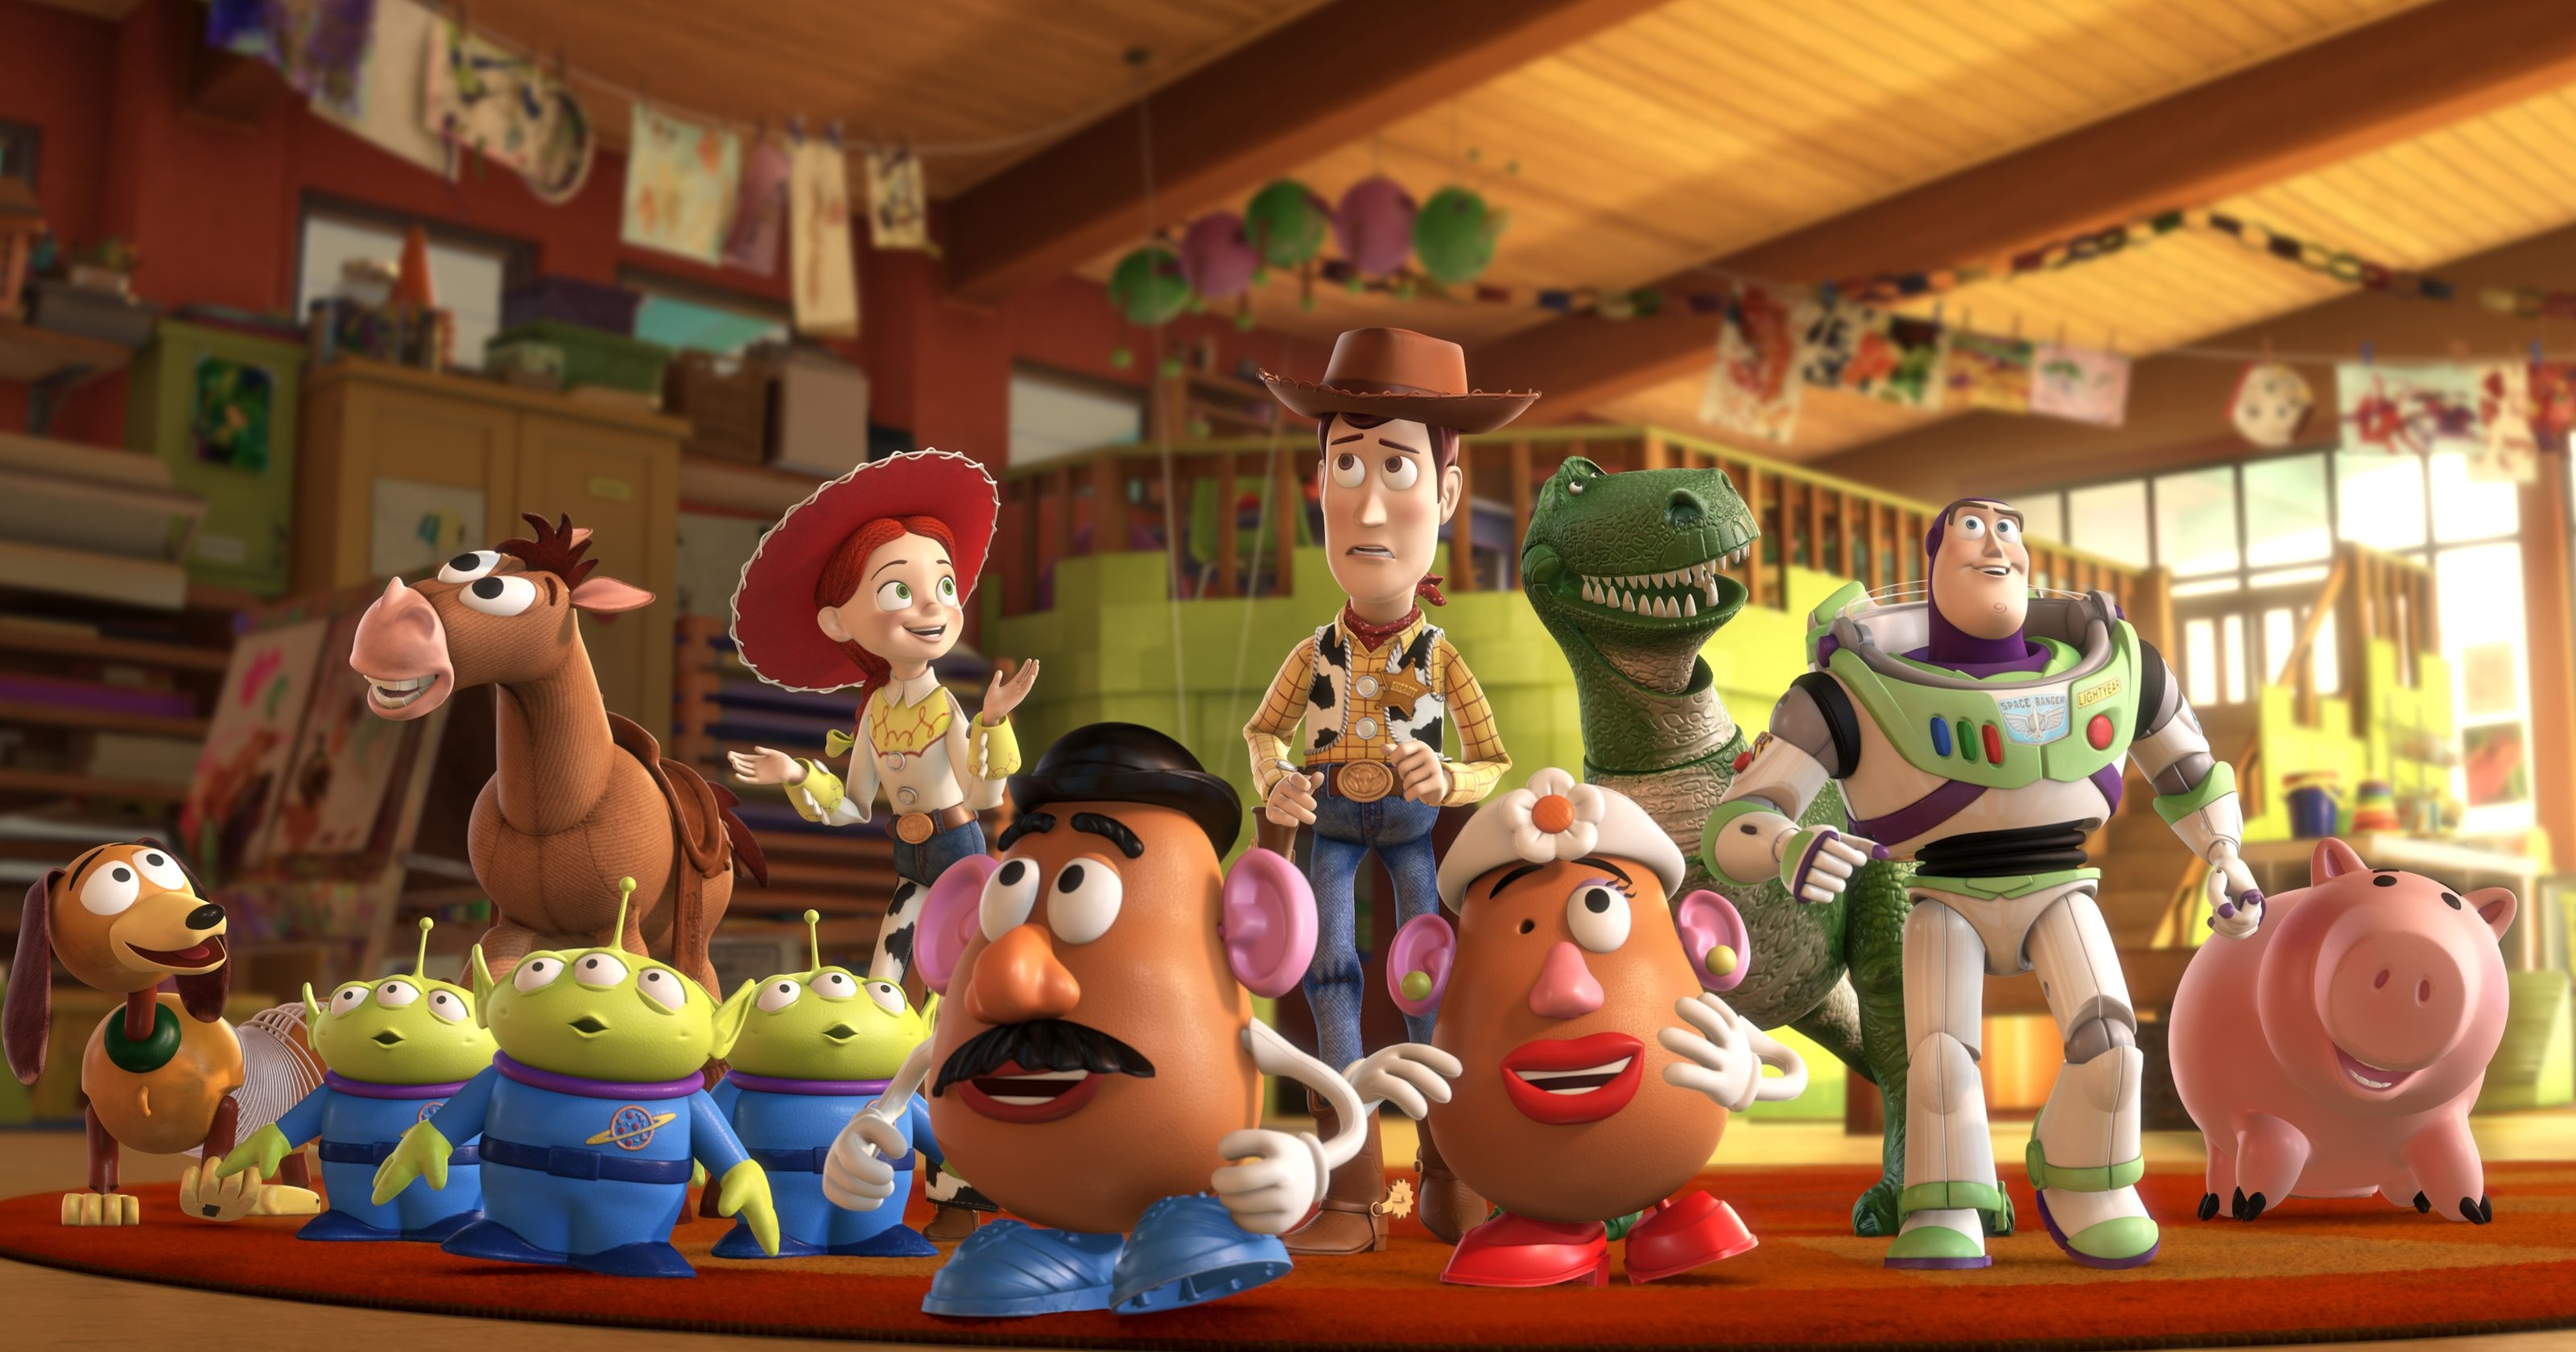 toystory 1 2 3 woody buzz light year family hd free wallpaper